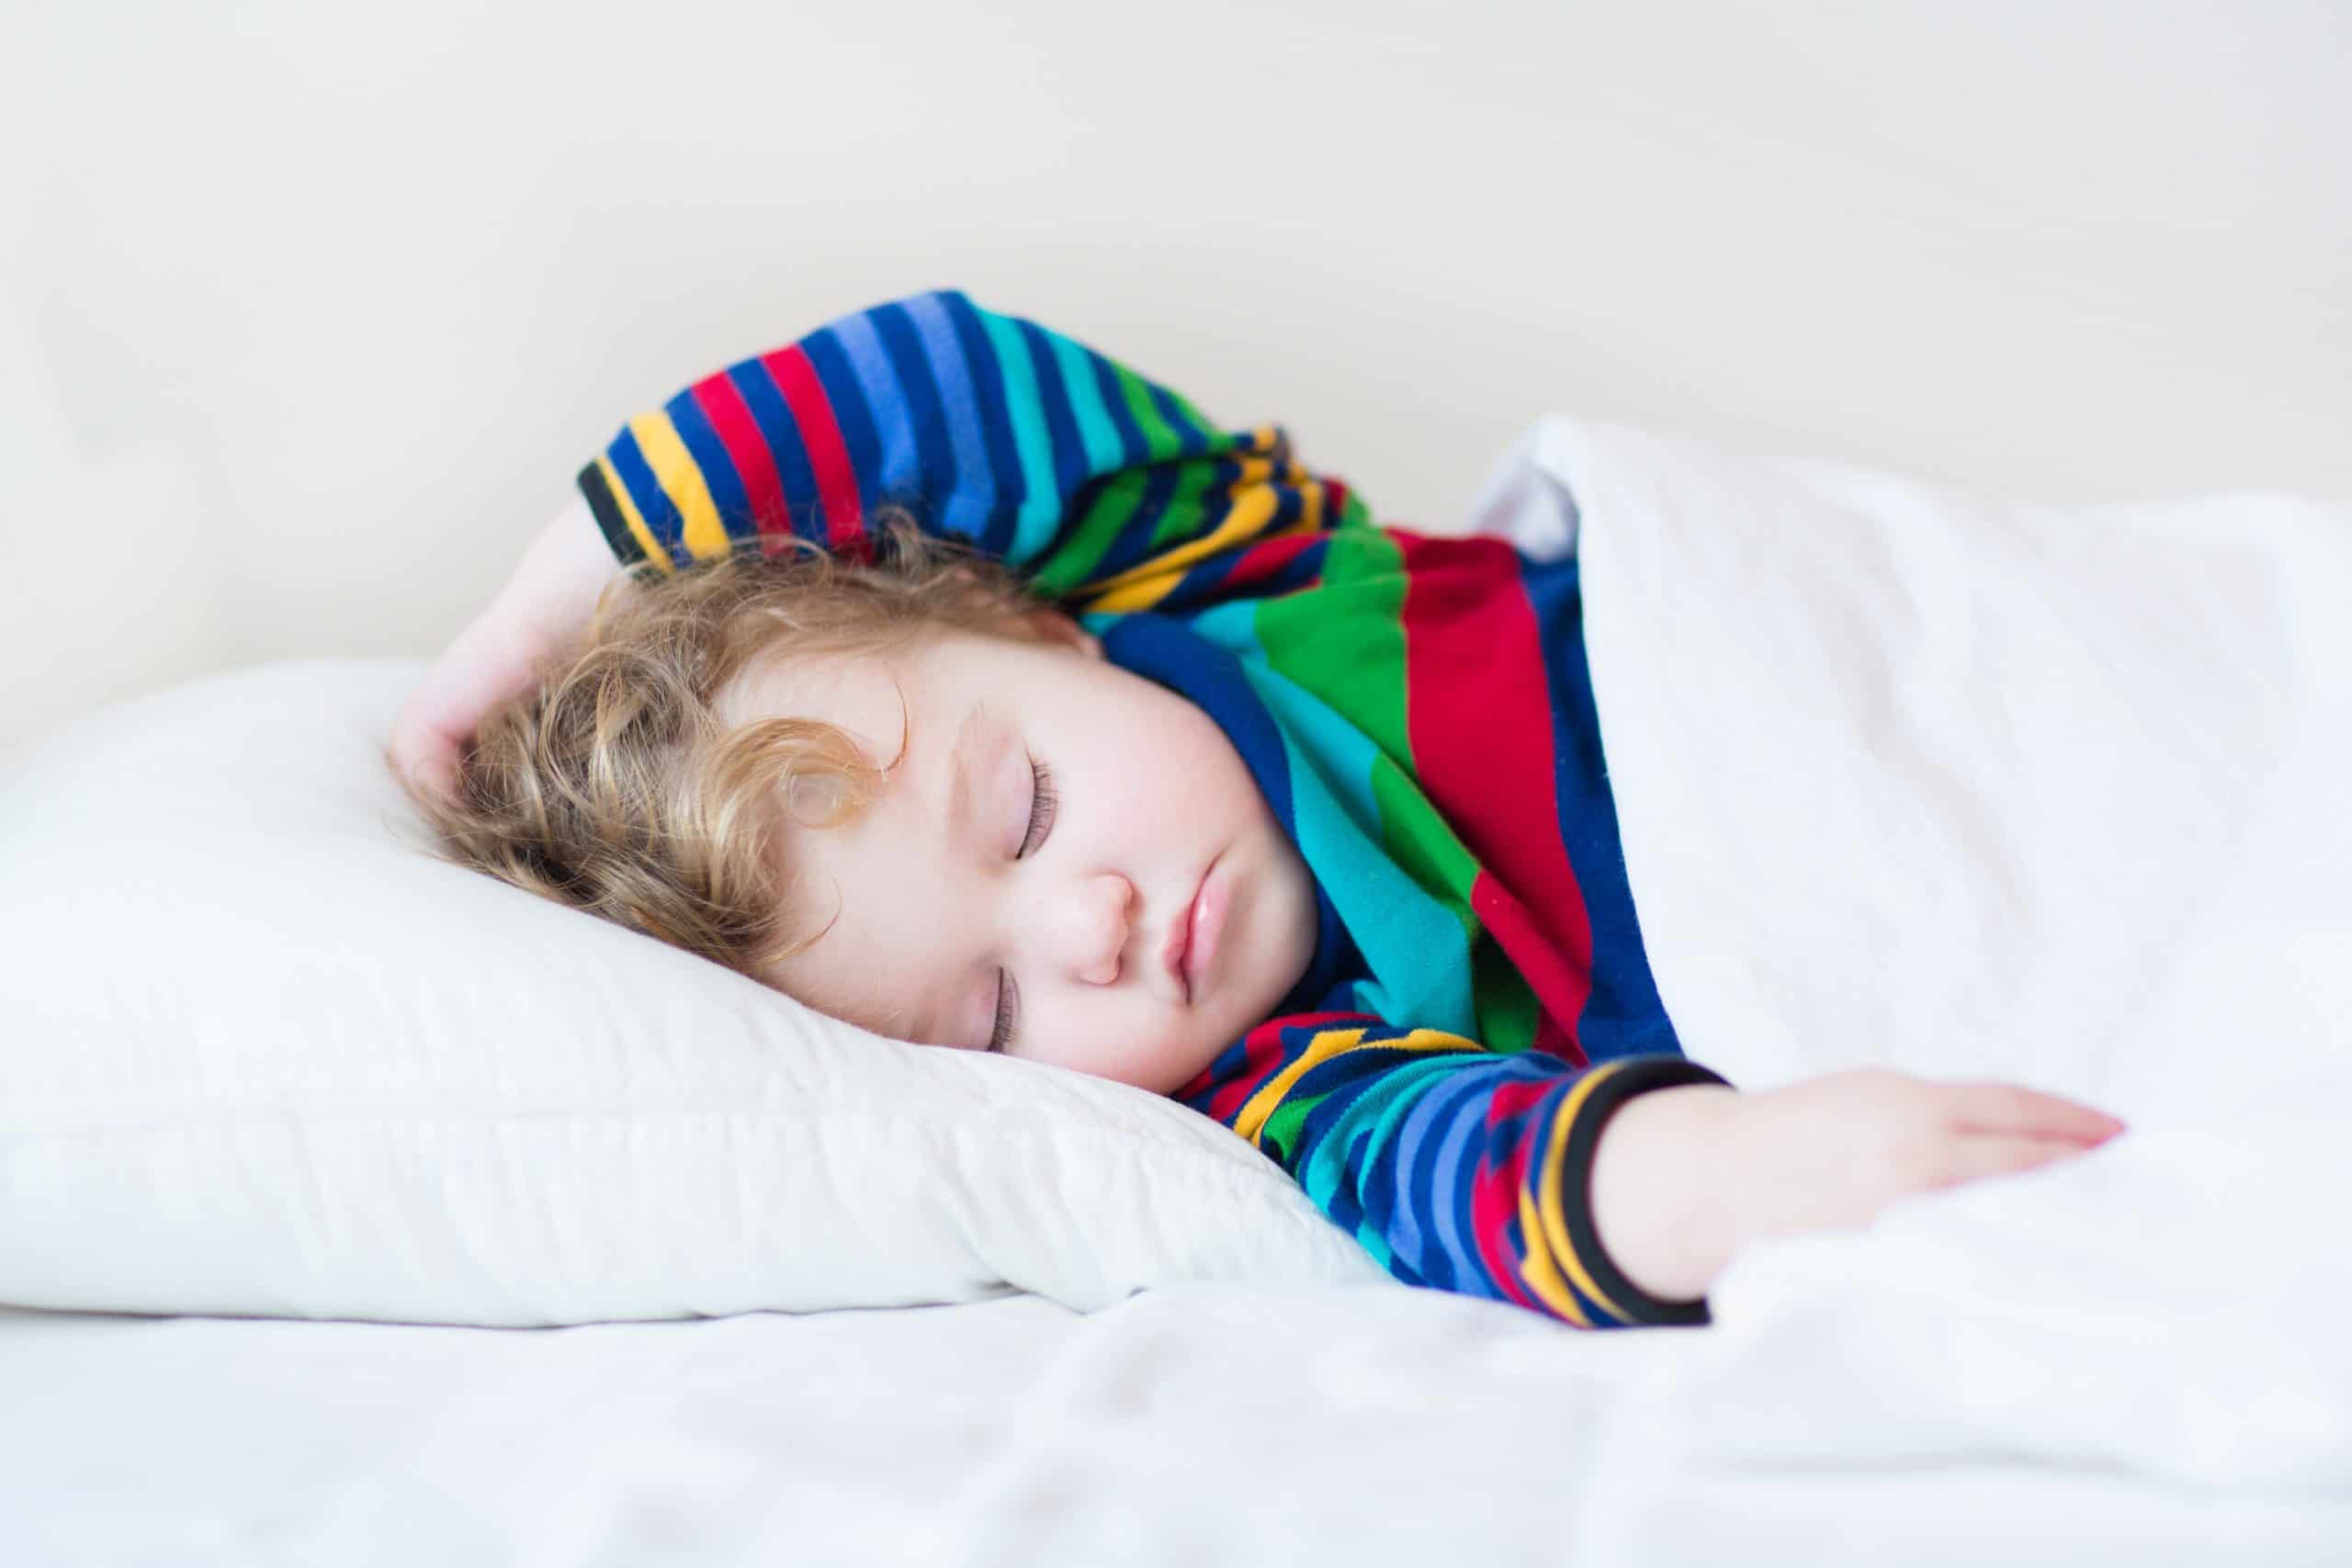 When do toddlers stop napping?